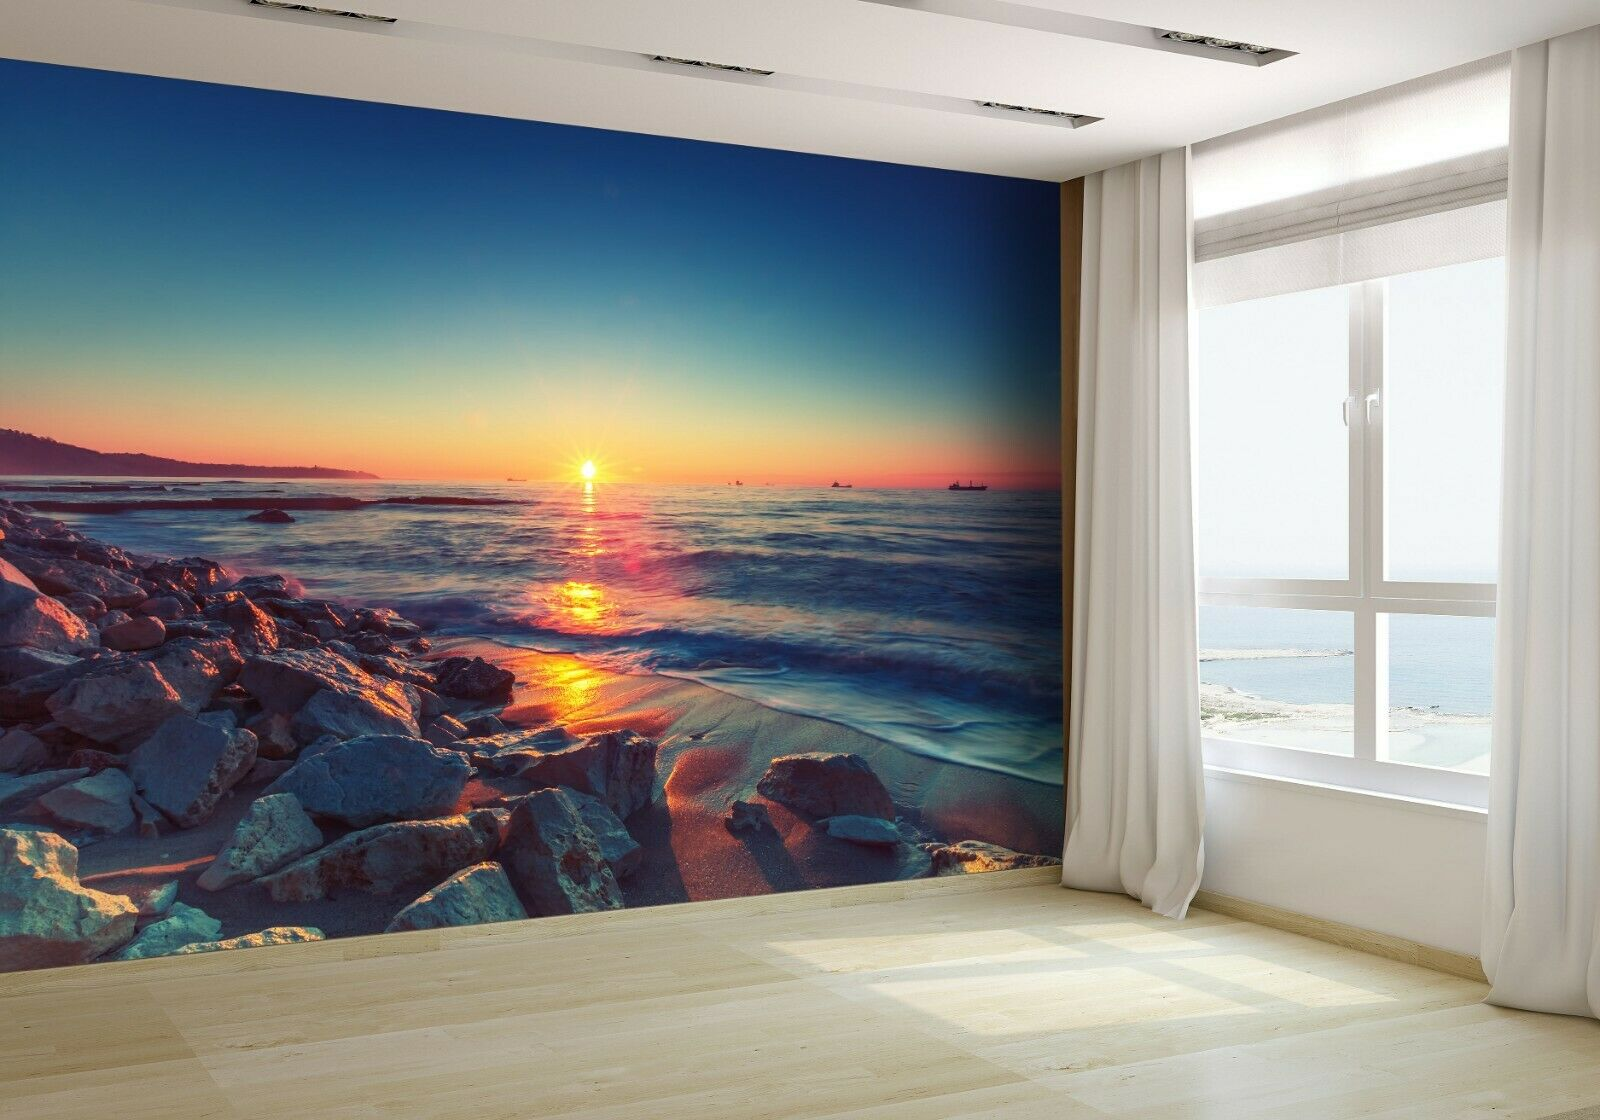 Beautiful Sunrise Over the Horizon Wallpaper Mural Photo 36801087 premium paper